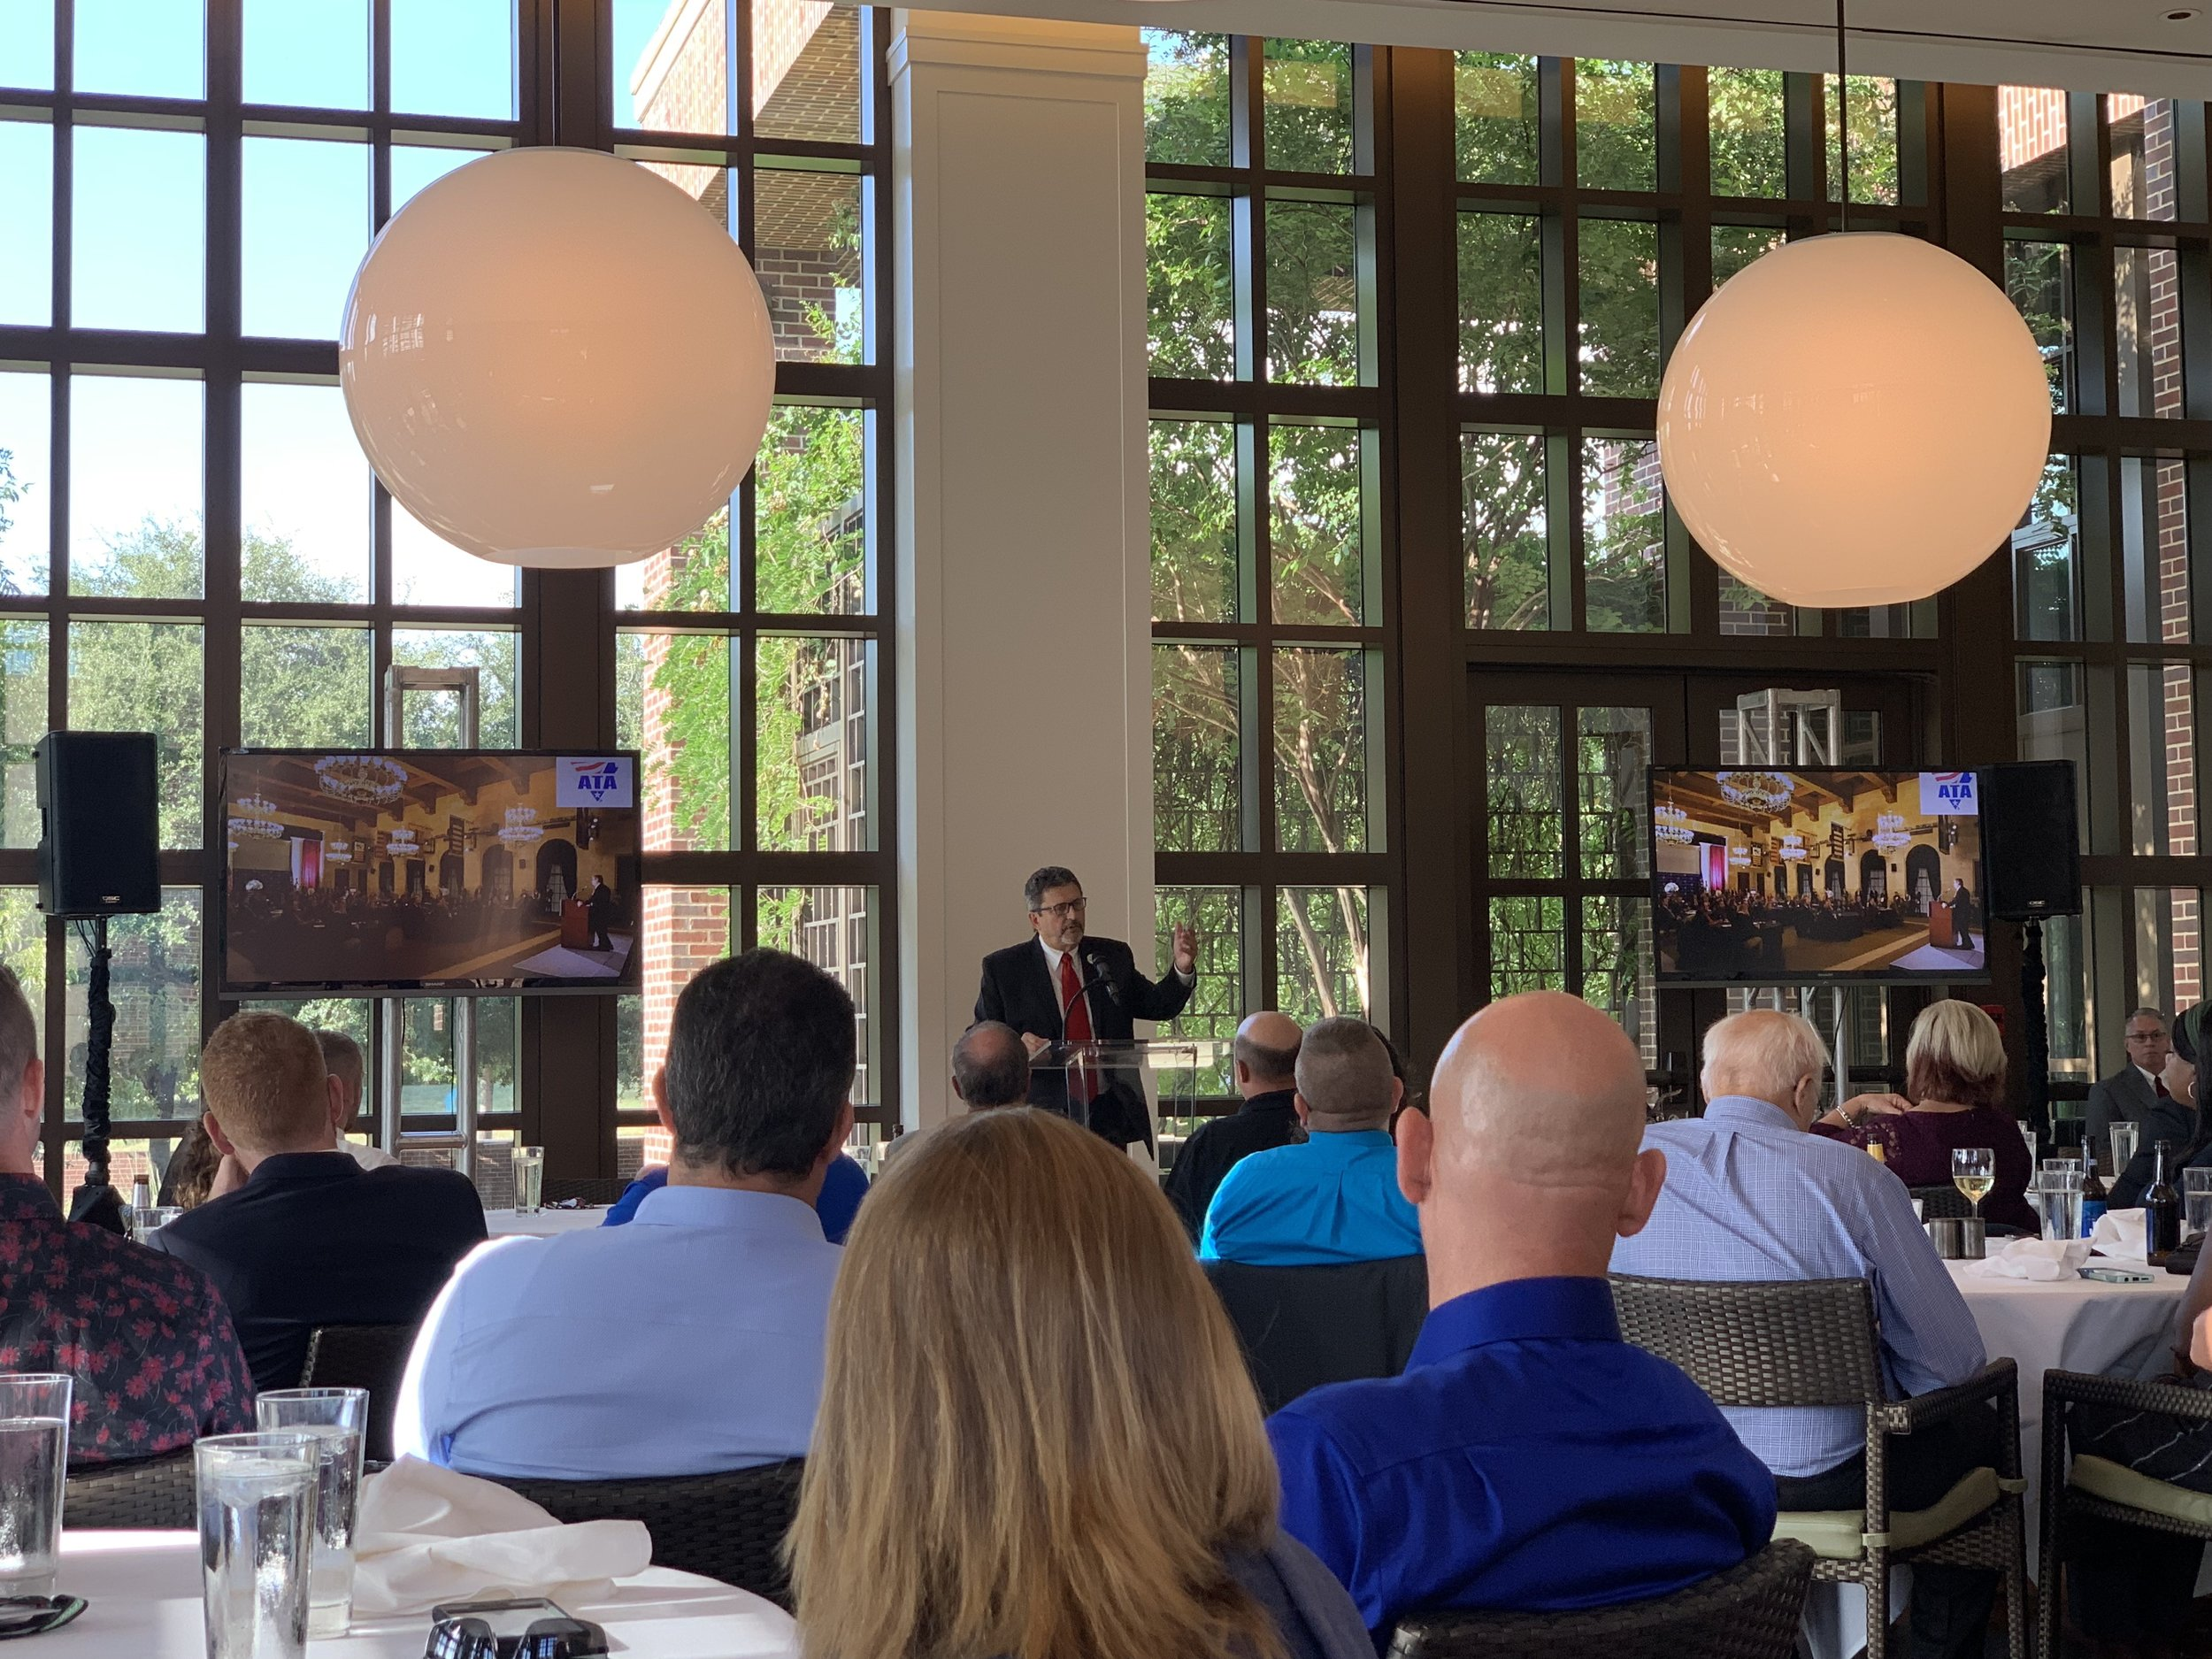 American Trucking Associations Chairman Kevin Burch speaks at the Driver Salute Dinner at the George W. Bush Library and Museum's Cafe 43 where Top 10 finalists were honored.